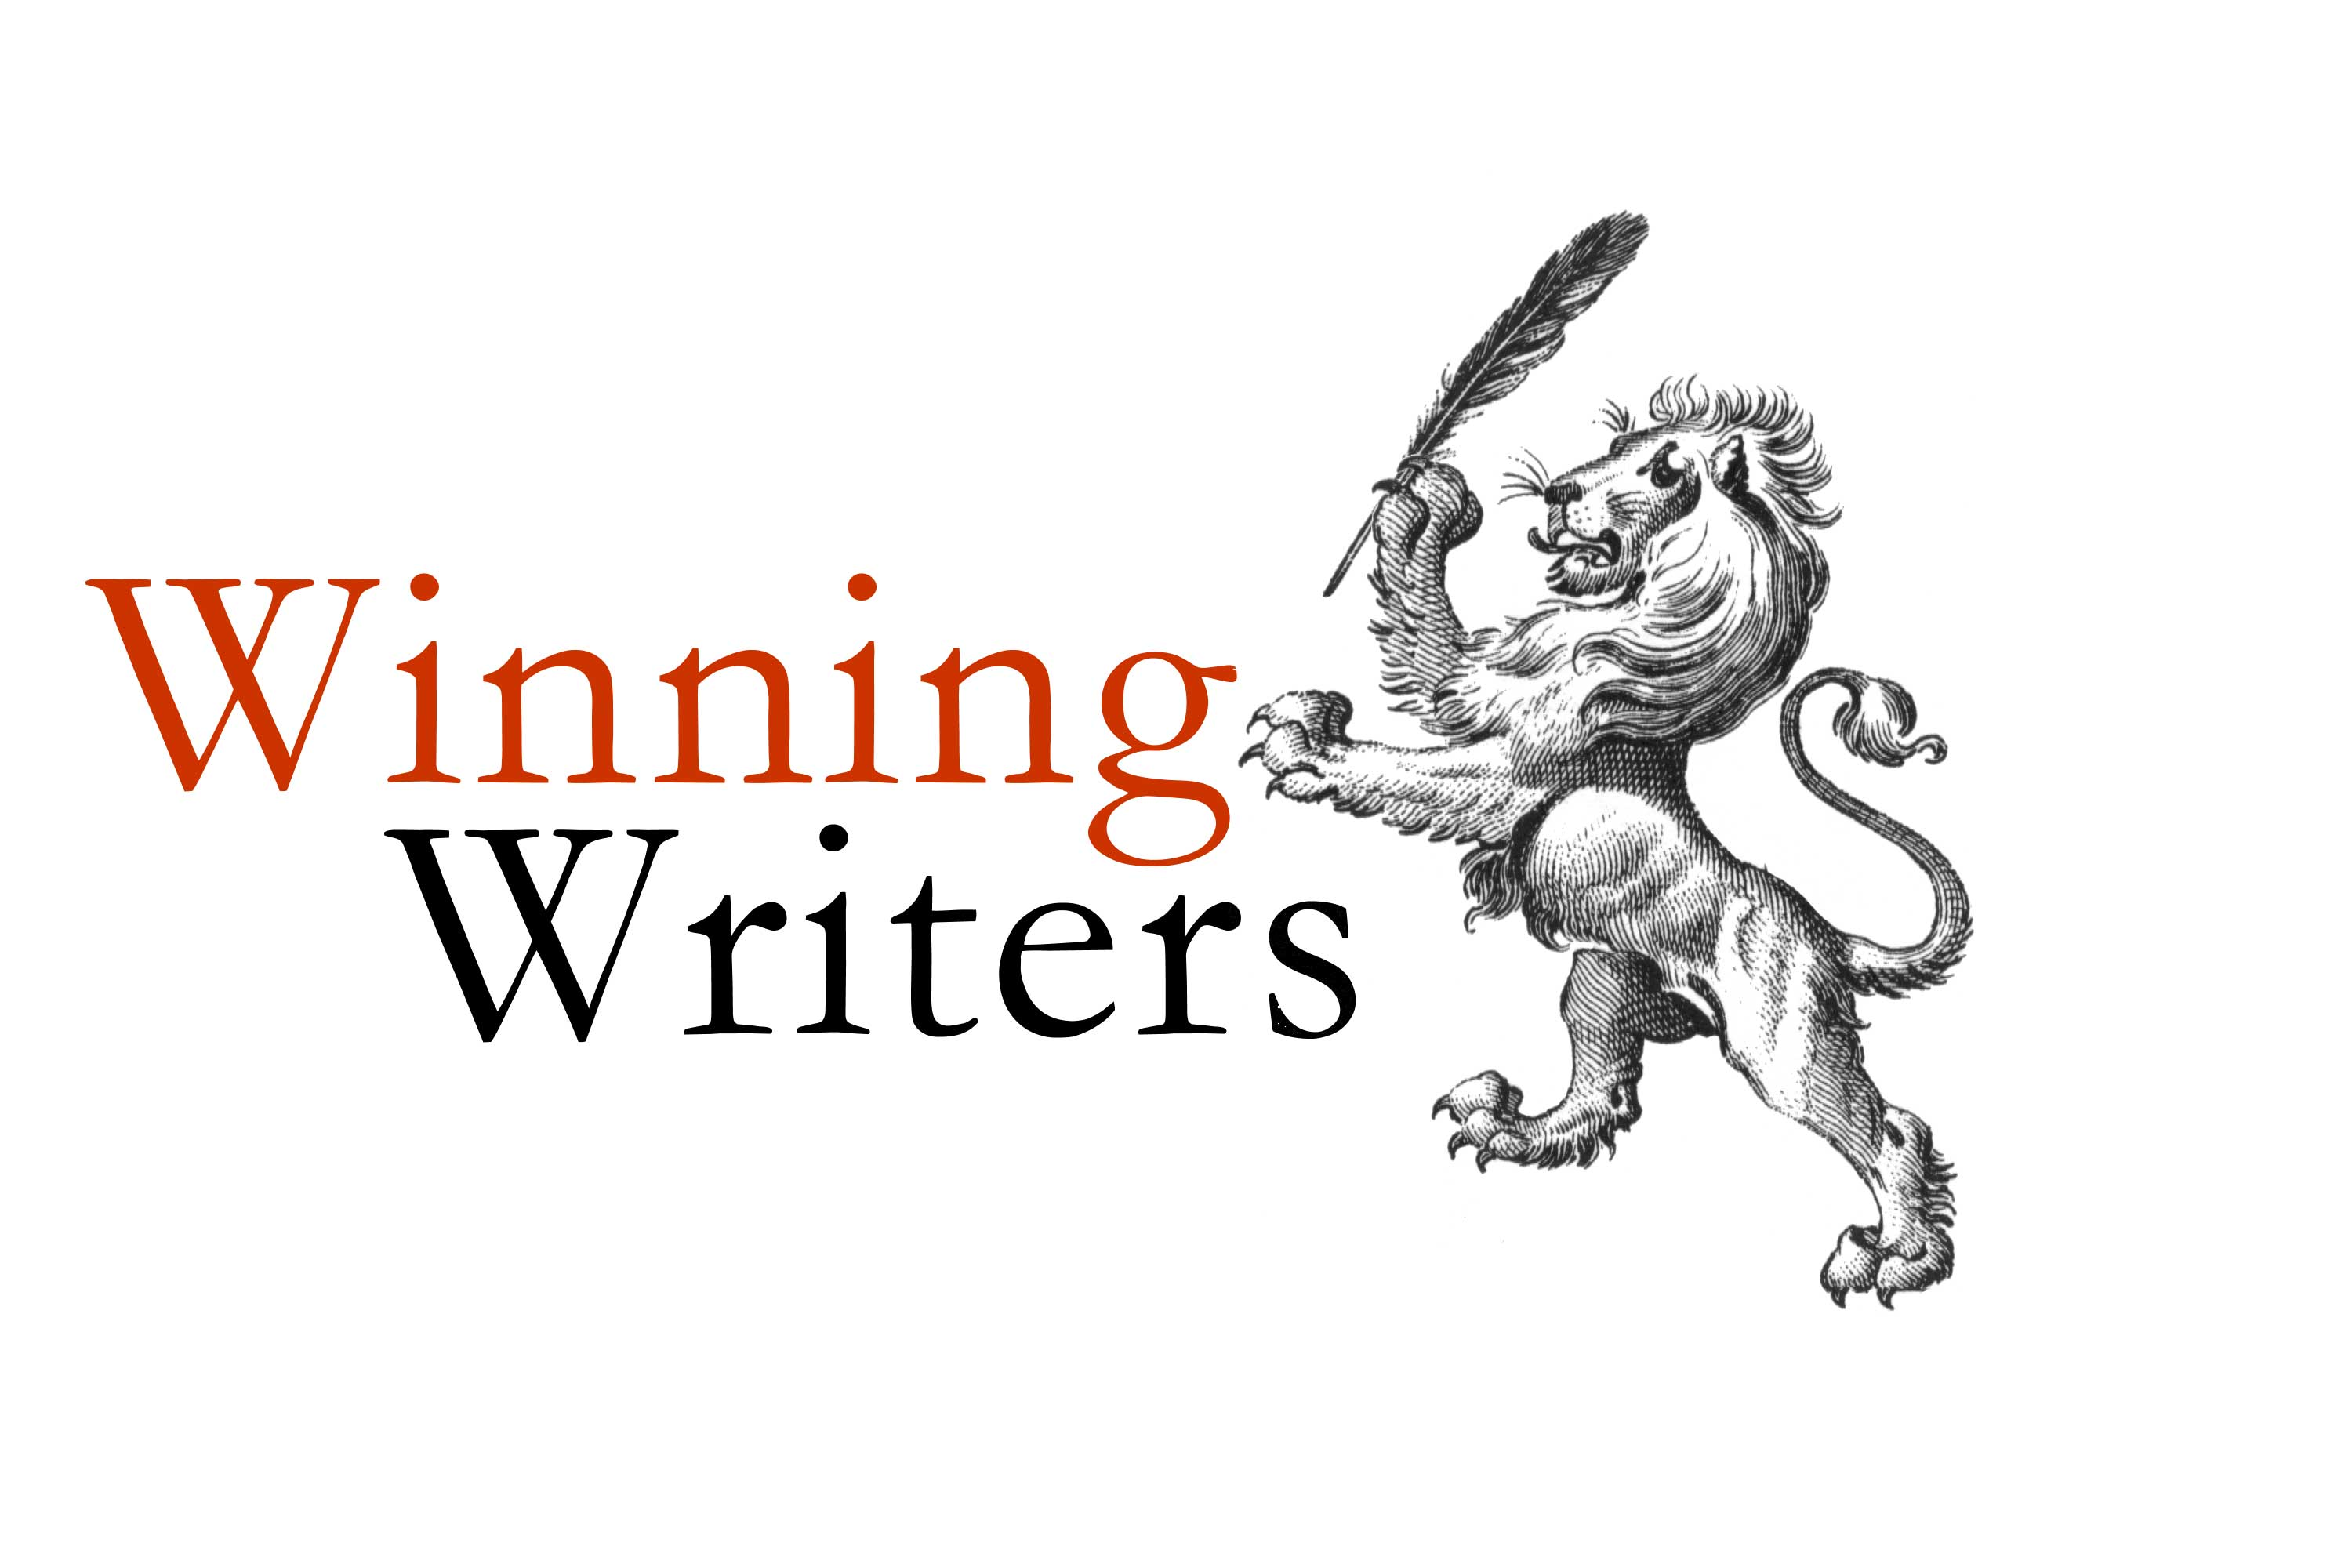 paid writing contests Short story and other creative writing contests and competitions with big cash prizes like the ones below can provide a real step up for writers writing competitions.